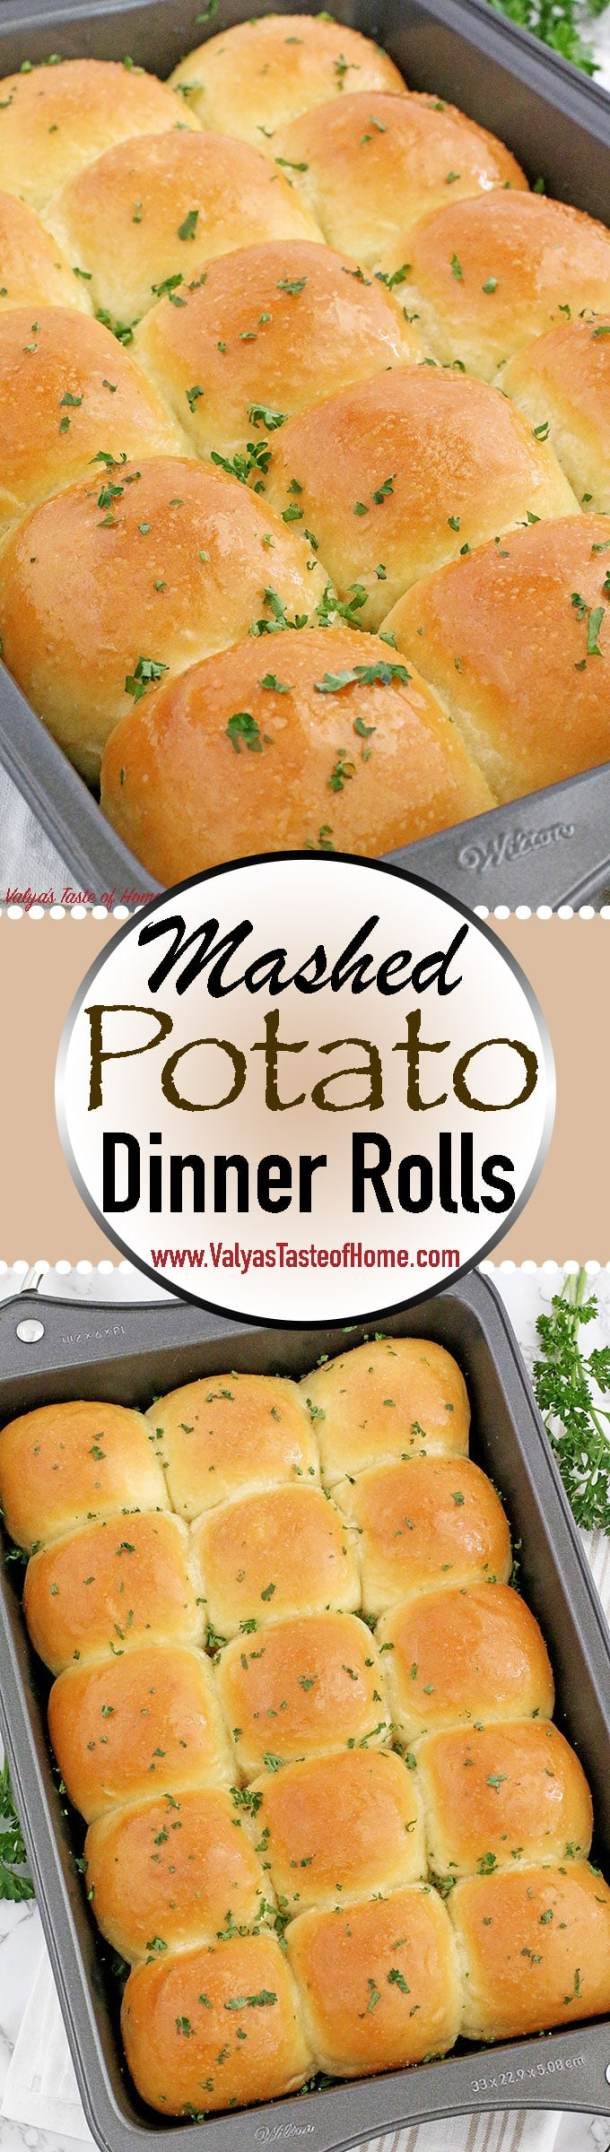 Do you have leftover mashed potatoes? Do not throw it away! Save it and put it into good use. These super soft as a brand-new pillow Mashed Potato Dinner Rolls are comforting, flavorful, light, tender, fluffy and absolutely amazing! #dinnerrolls #easyrecipe #familyfavorite #kidfriendly   www.valyastasteofhome.com